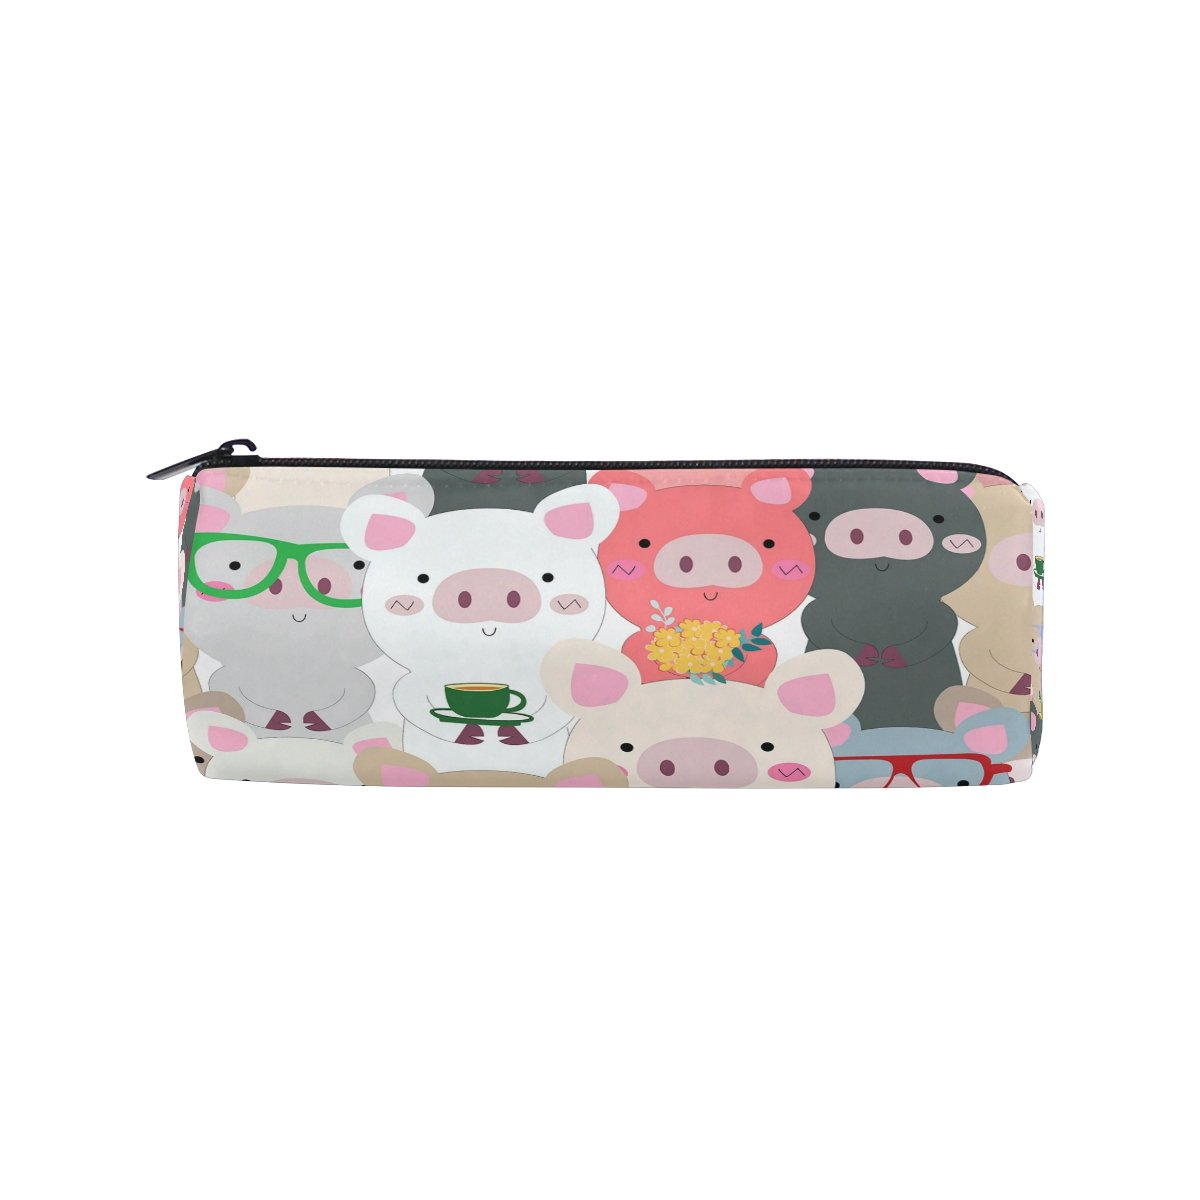 ALAZA Cartoon Pig Blue Grey Animal Pencil Pen Case Pouch Bag with Zipper for Girls Kids School Student Stationery Office Supplies